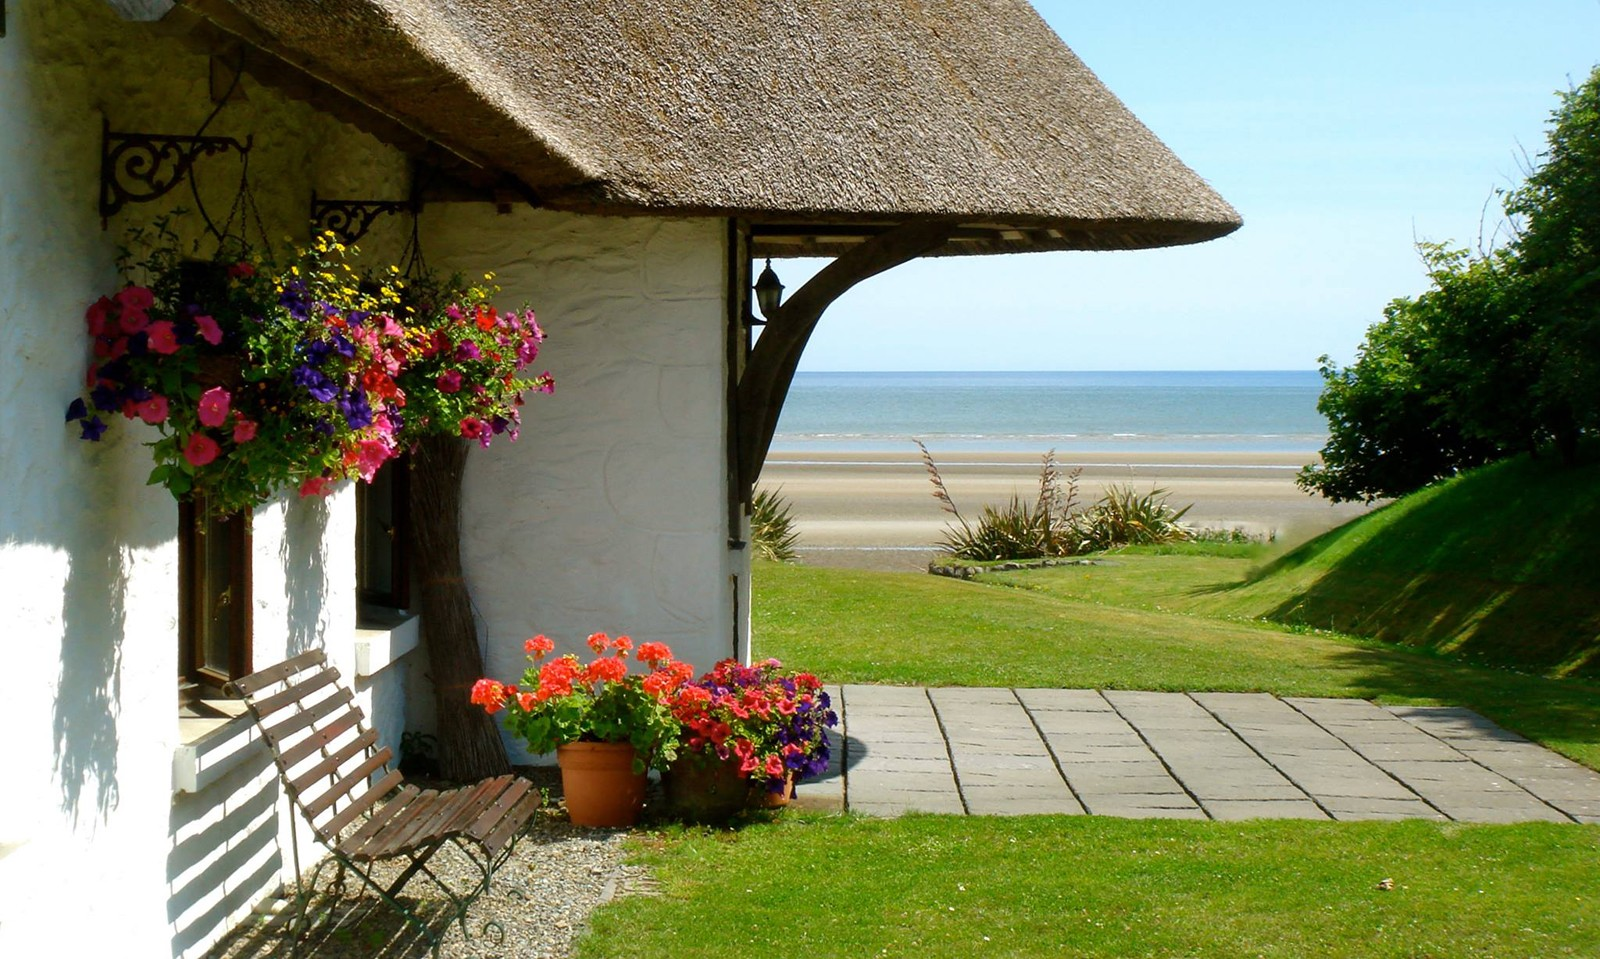 5-Star Cottages, Bettystown, Co. Meath